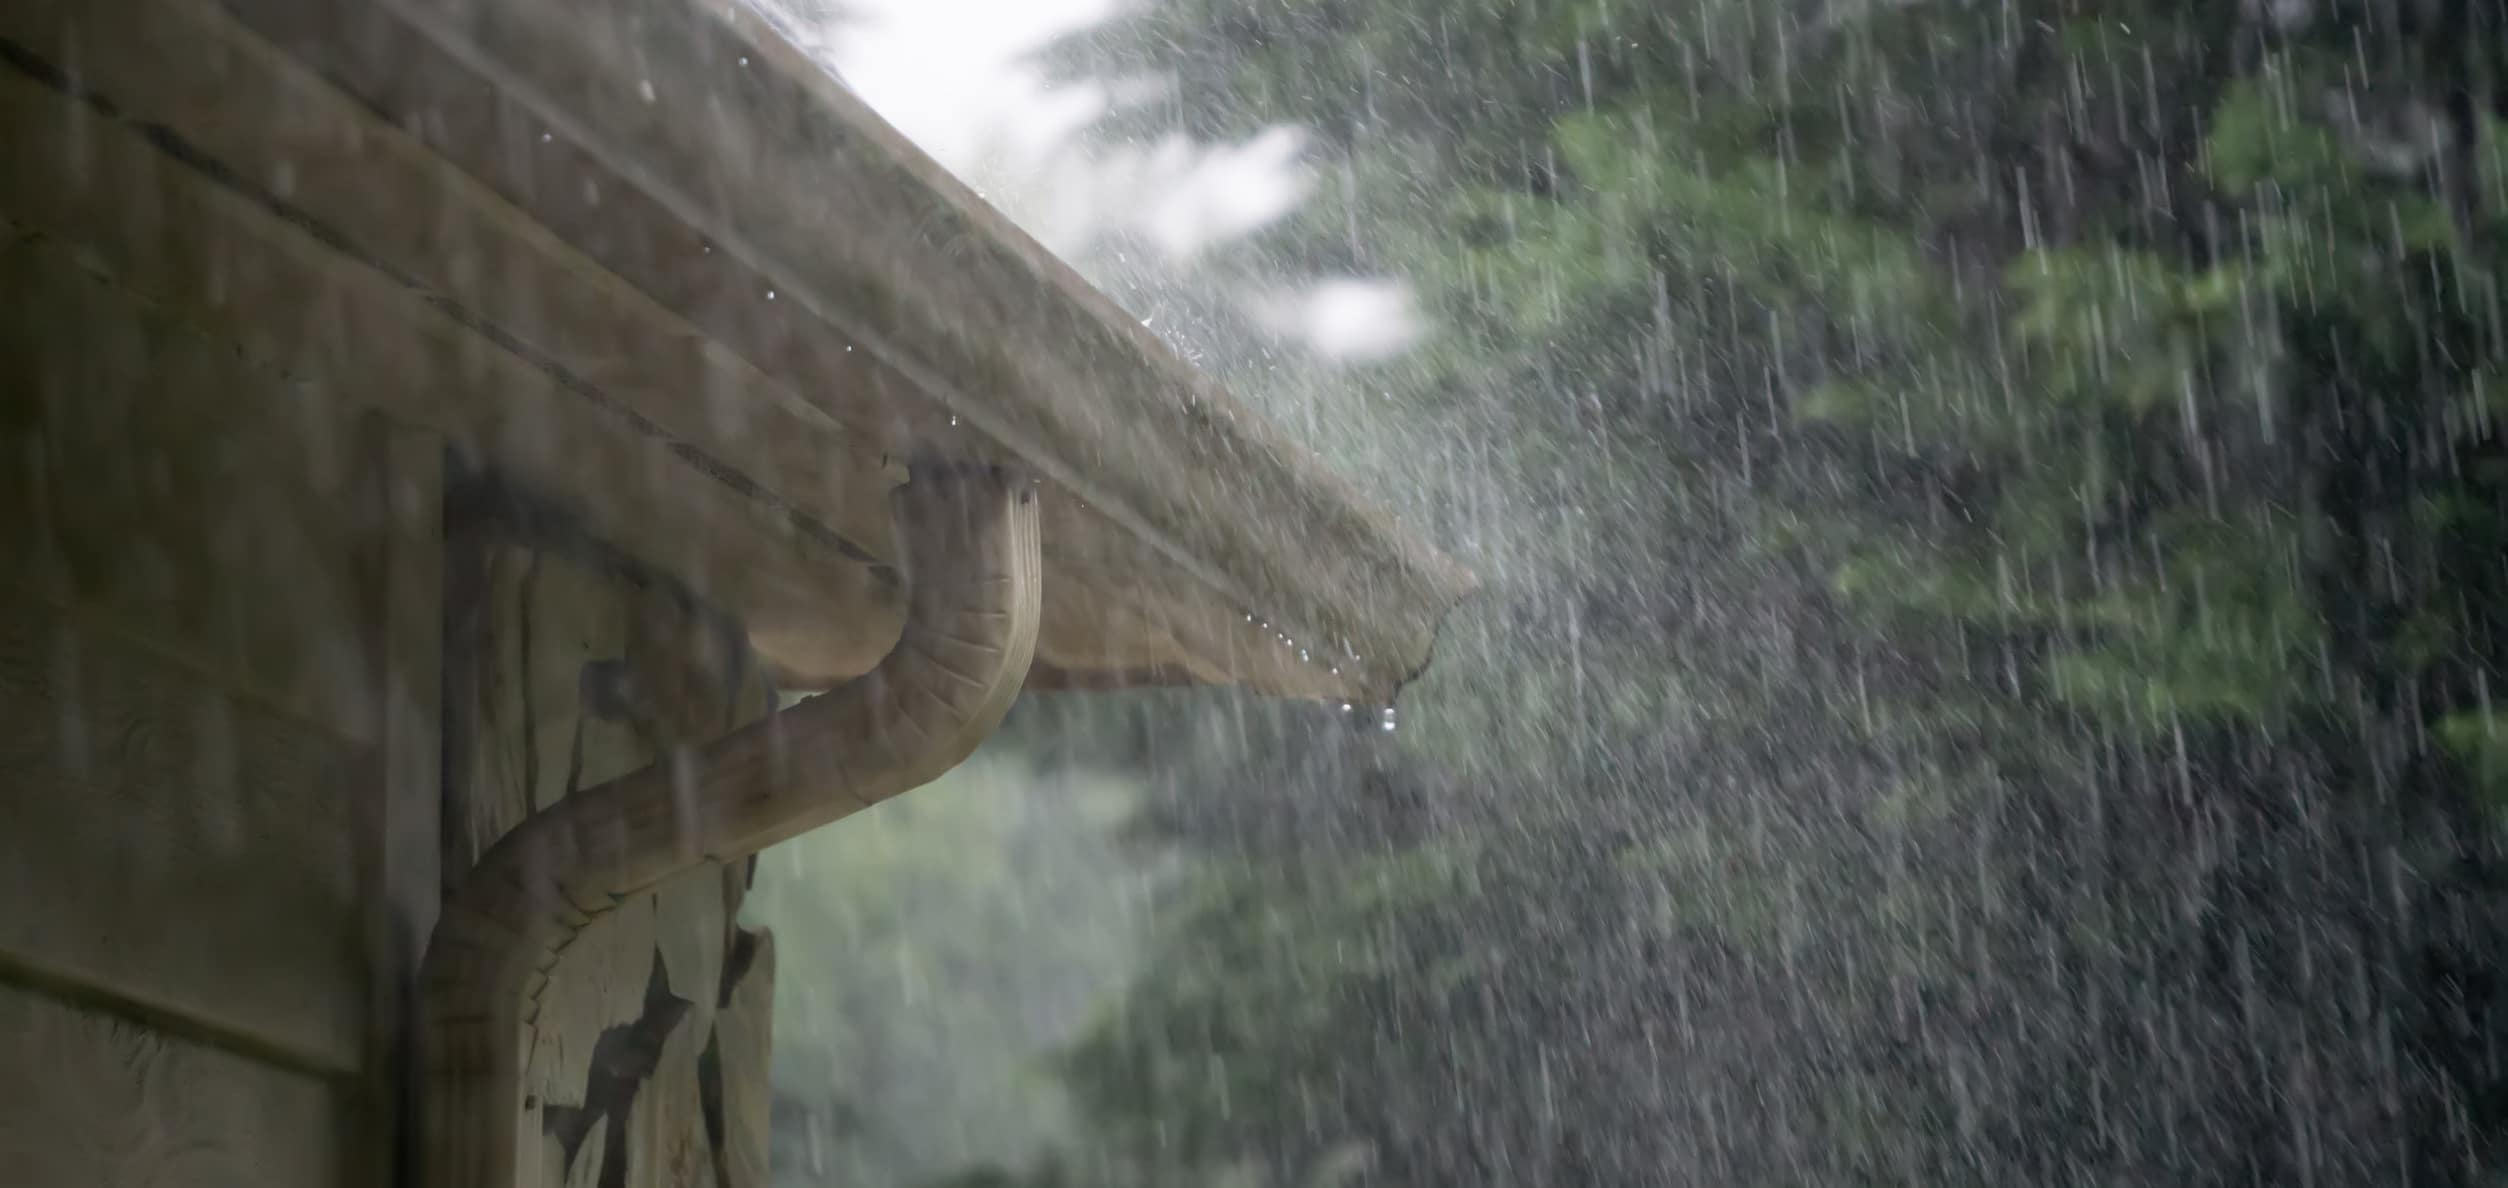 Heavy rain pouring onto home roof and gutter